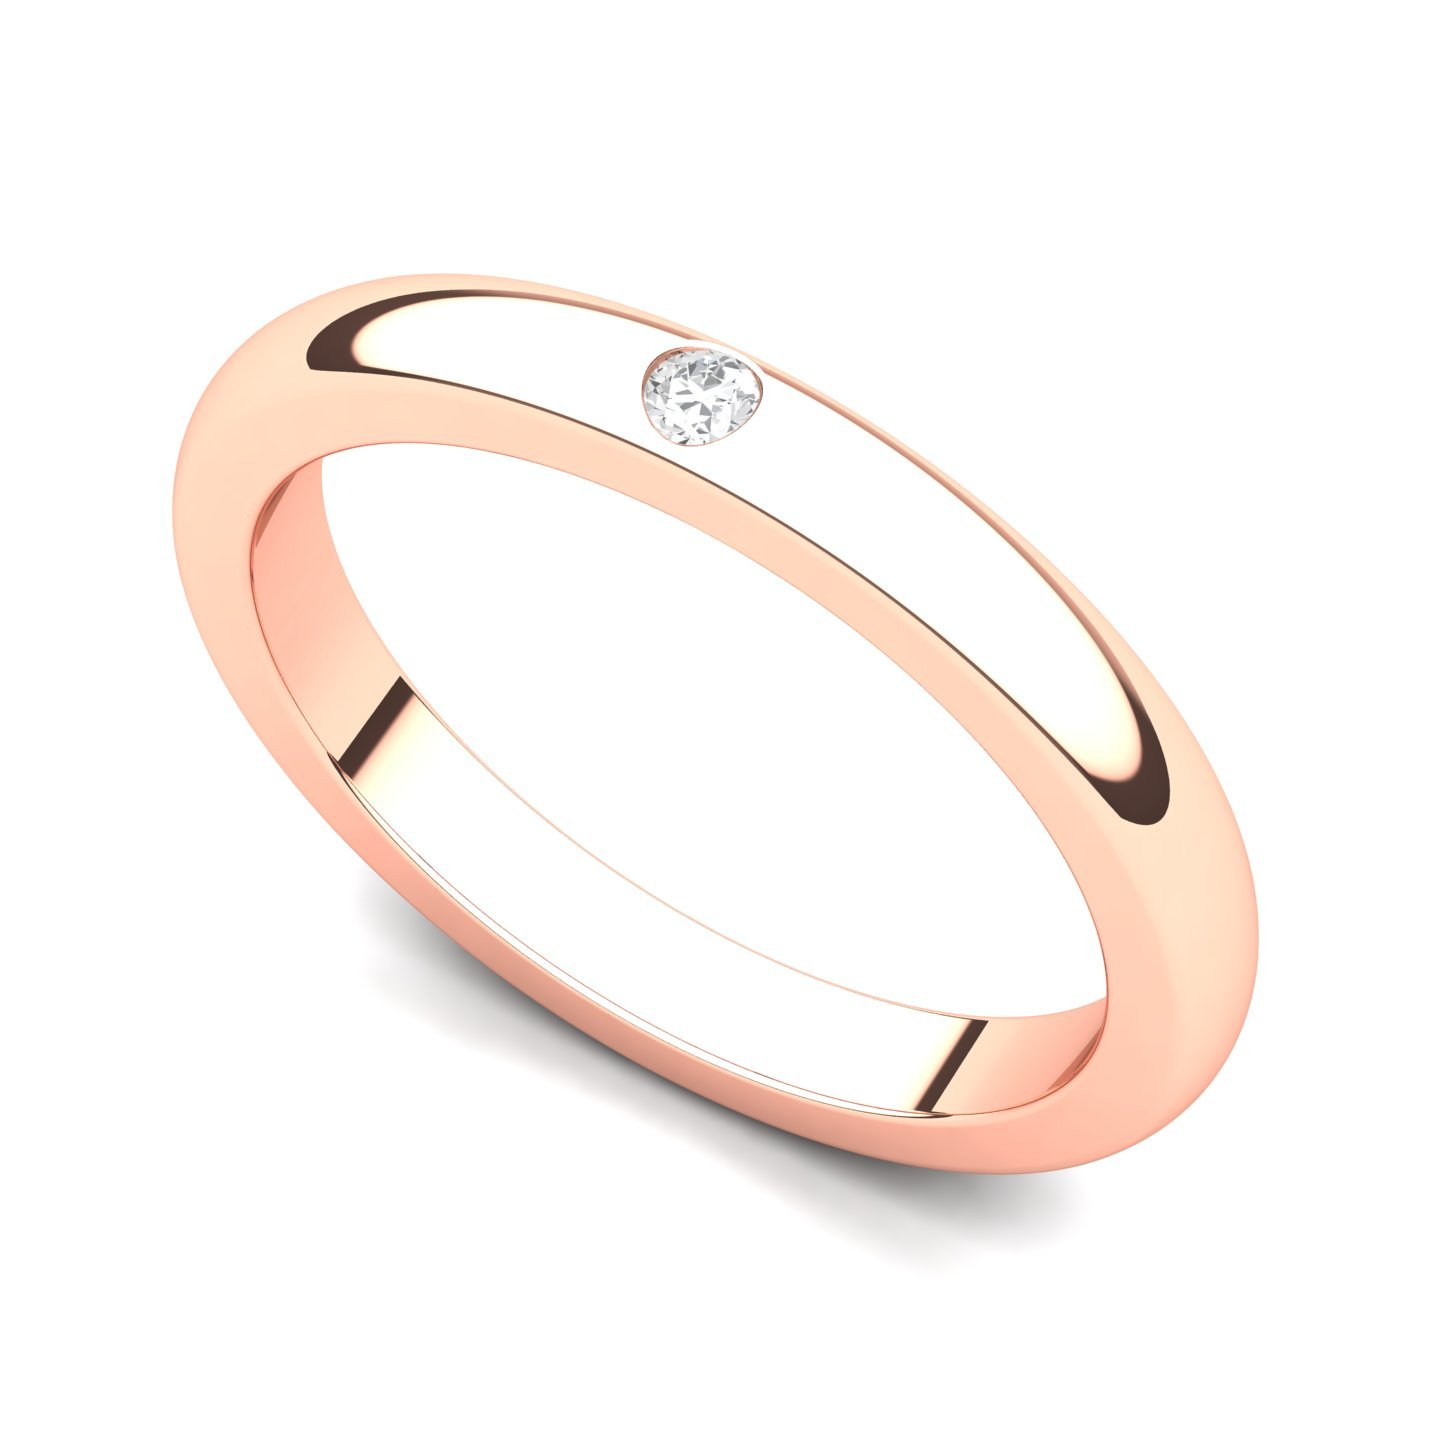 14k Rose Gold Bezel set Diamond Wedding Band Ring (G-H/SI, 0.03 ct.), 6 by Juno Jewelry